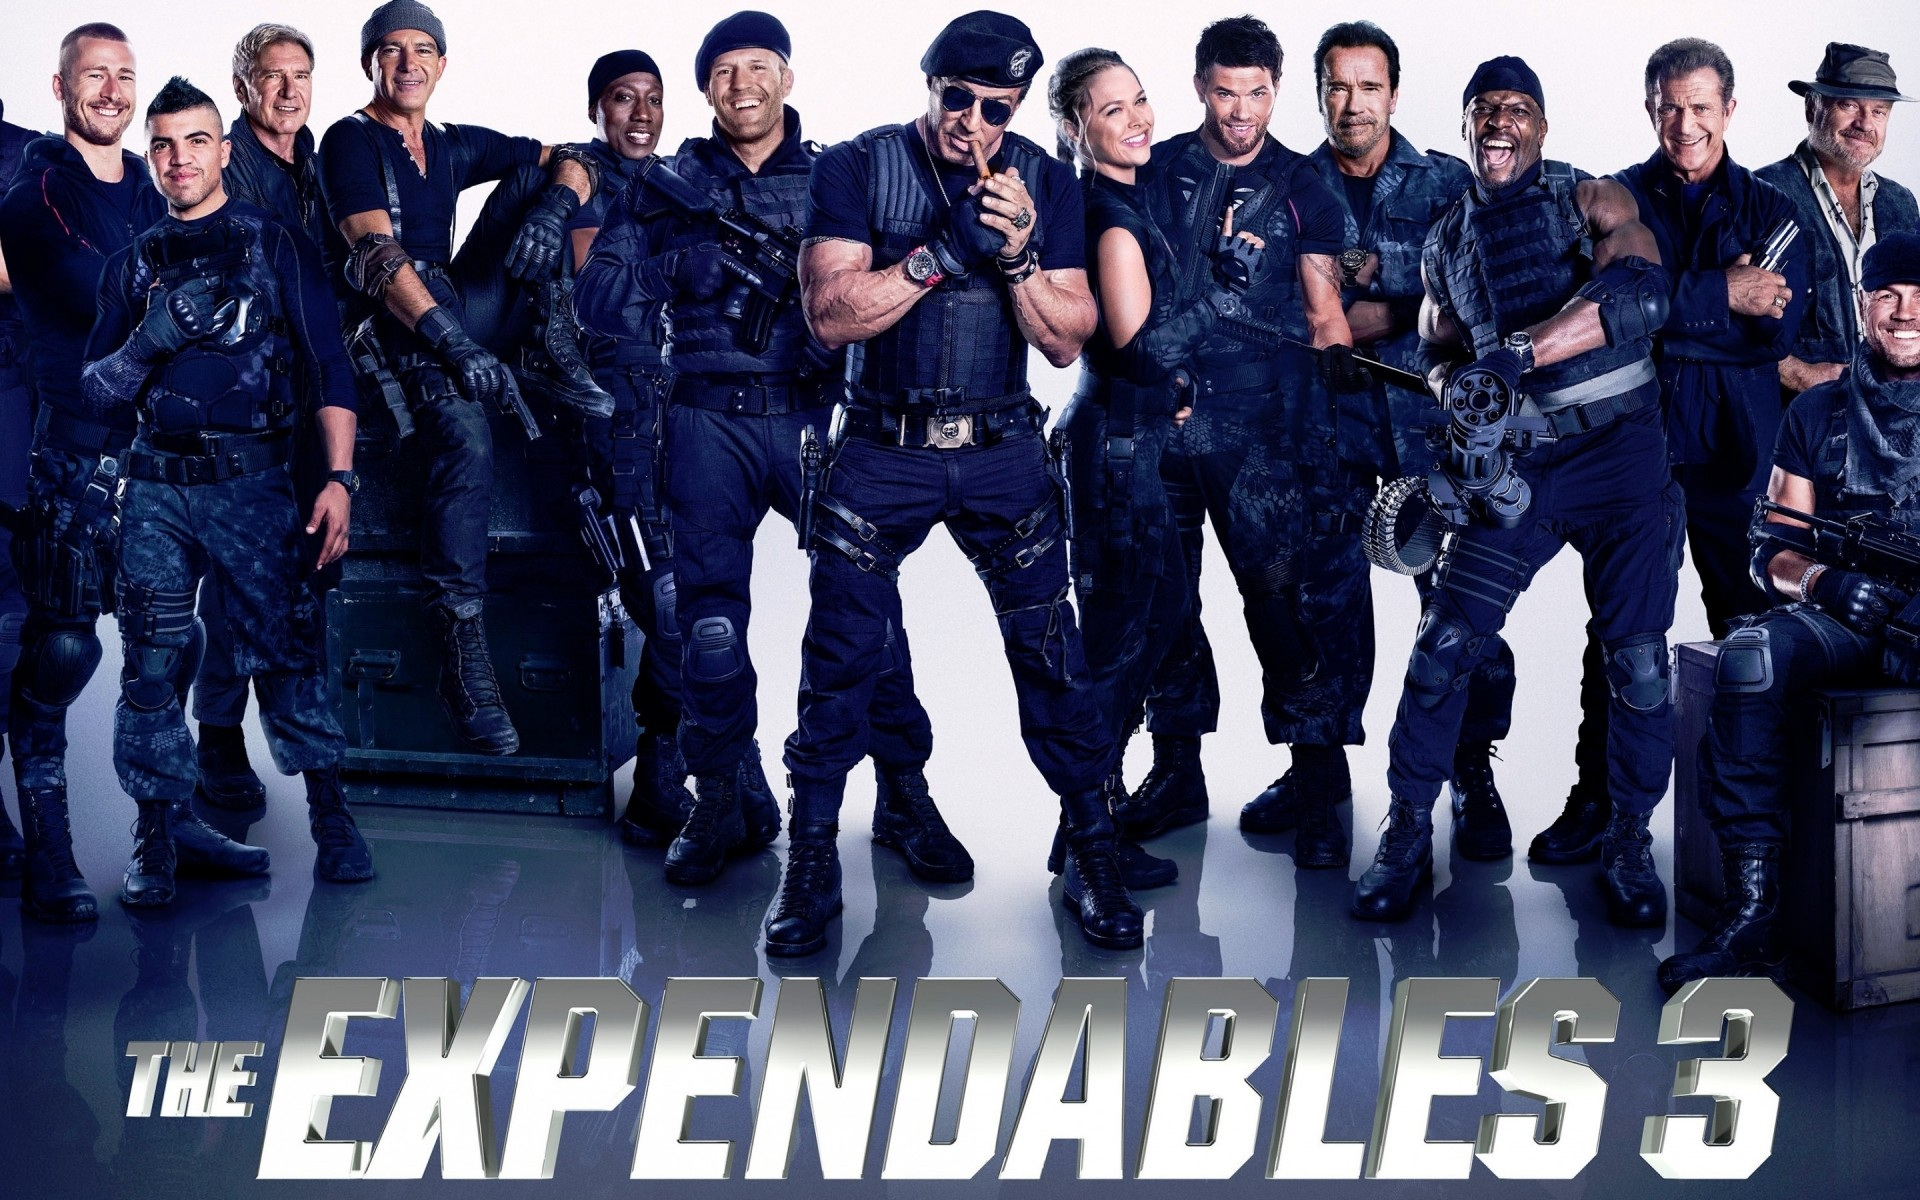 movies man military squad football competition police offense group uniform the expendables 3 sylvester stallone jason statham arnold schwarzenegger jet li antonio banderas wesley snipes dolph lundgren